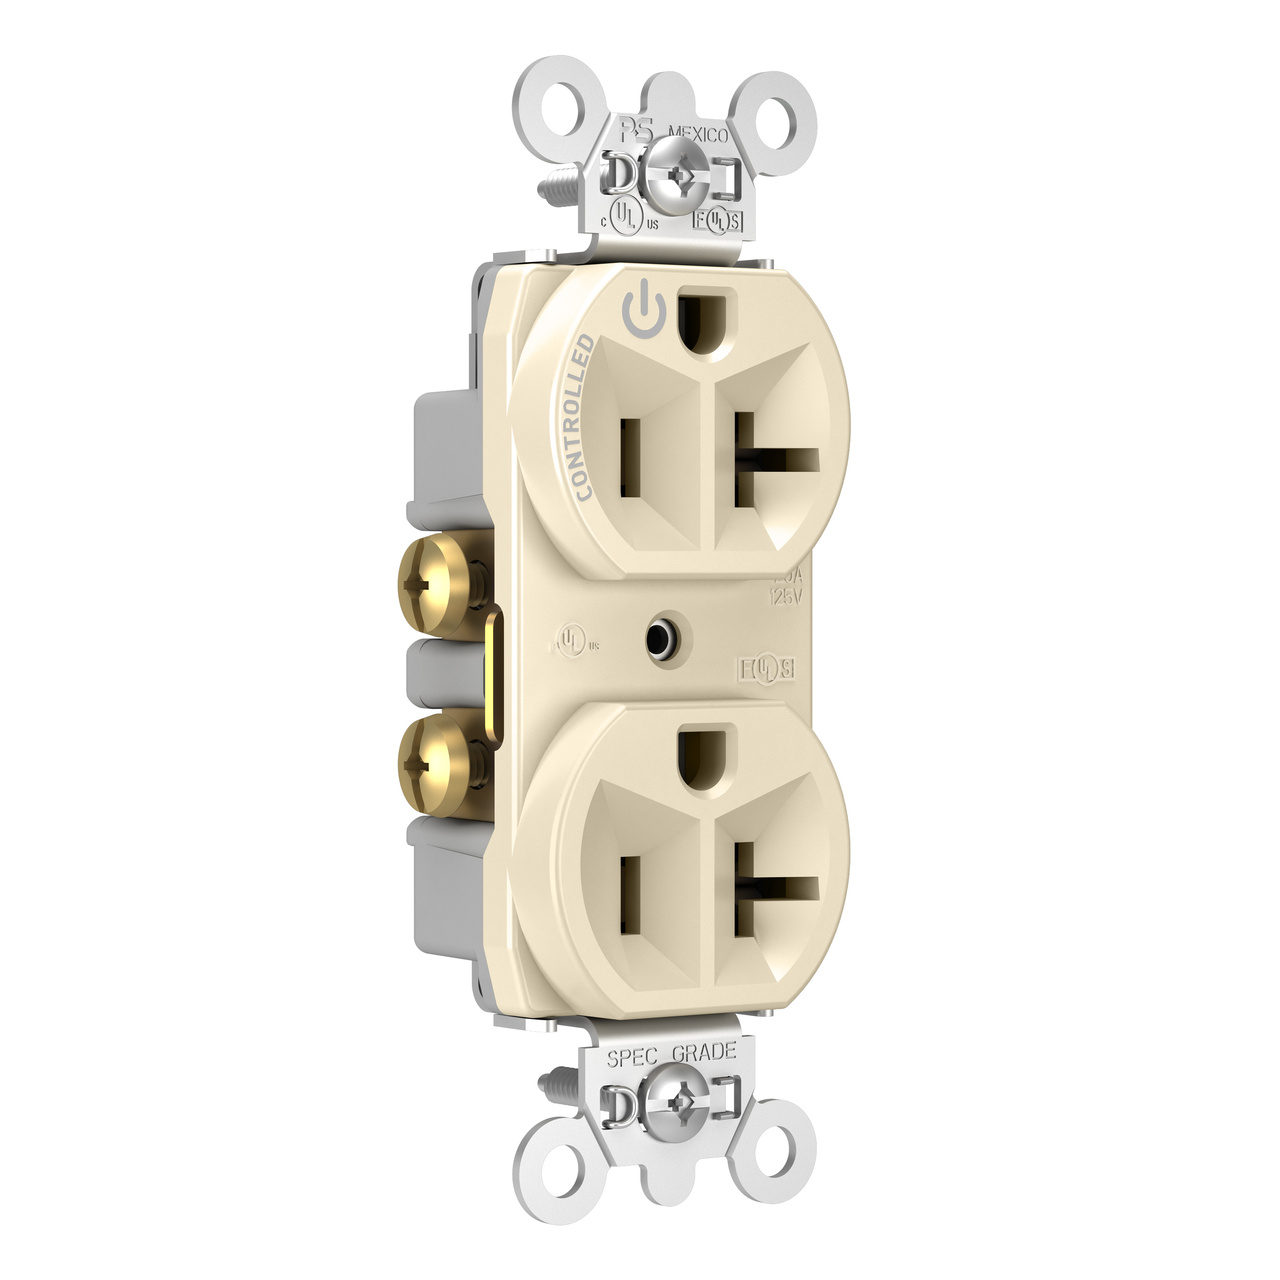 20A, 125V Half-Controlled Plug Load Controllable Receptacle, Light Almond